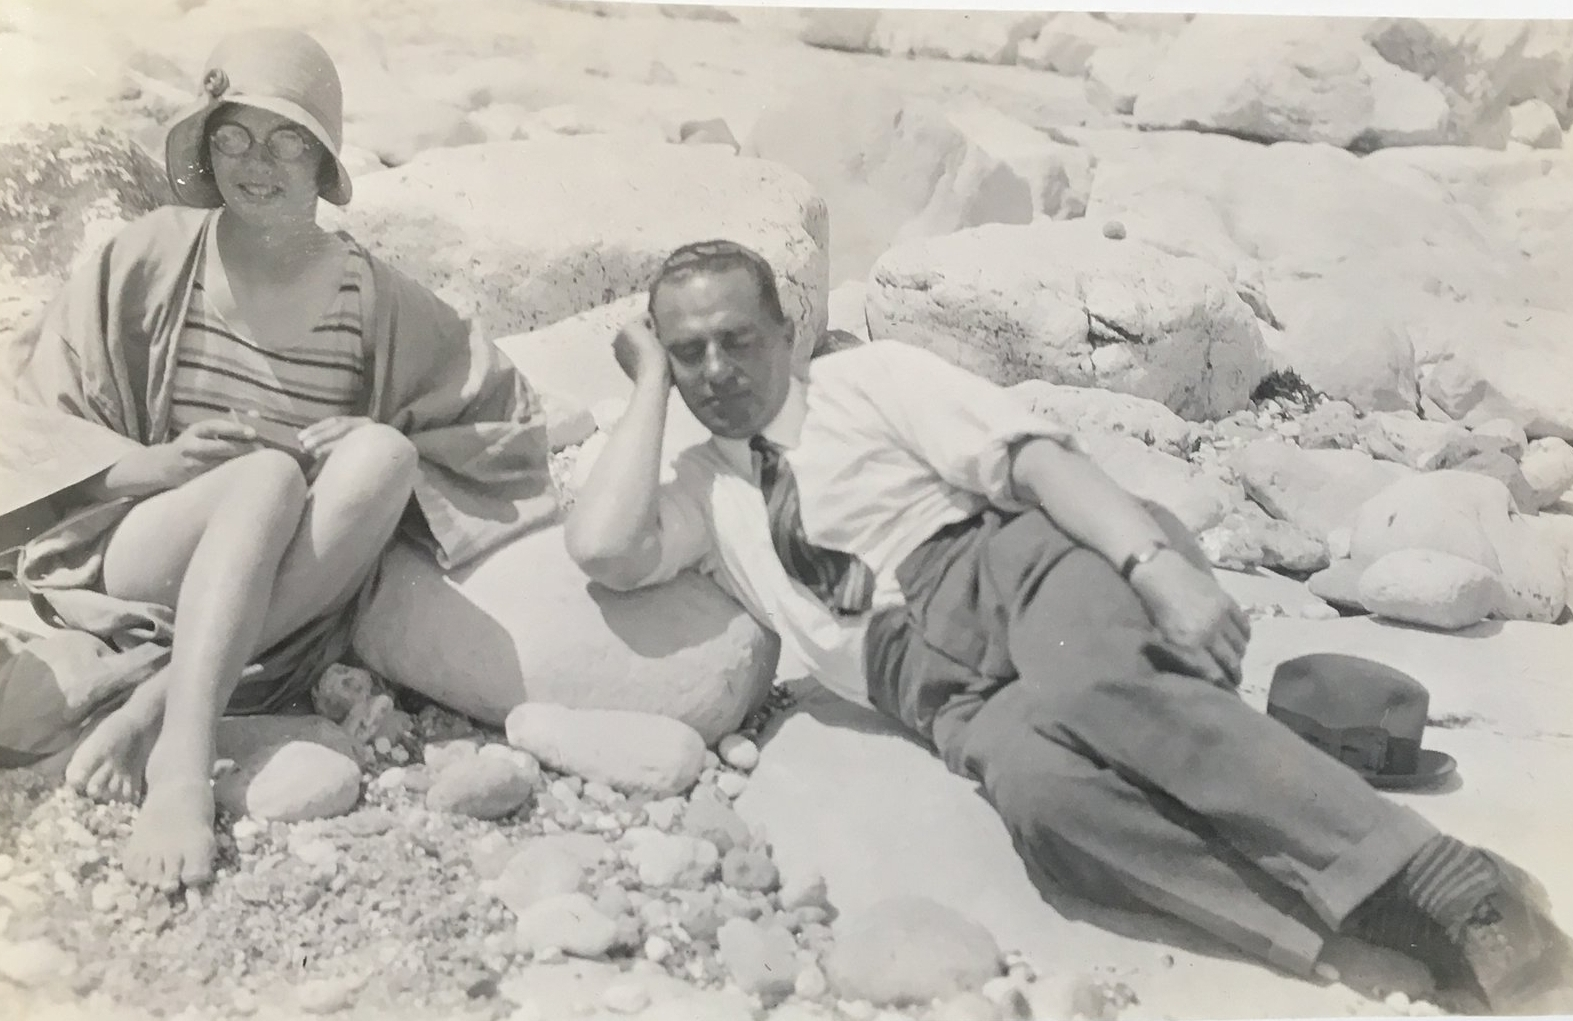 1930 - Aged fourteen, on the beach with her father